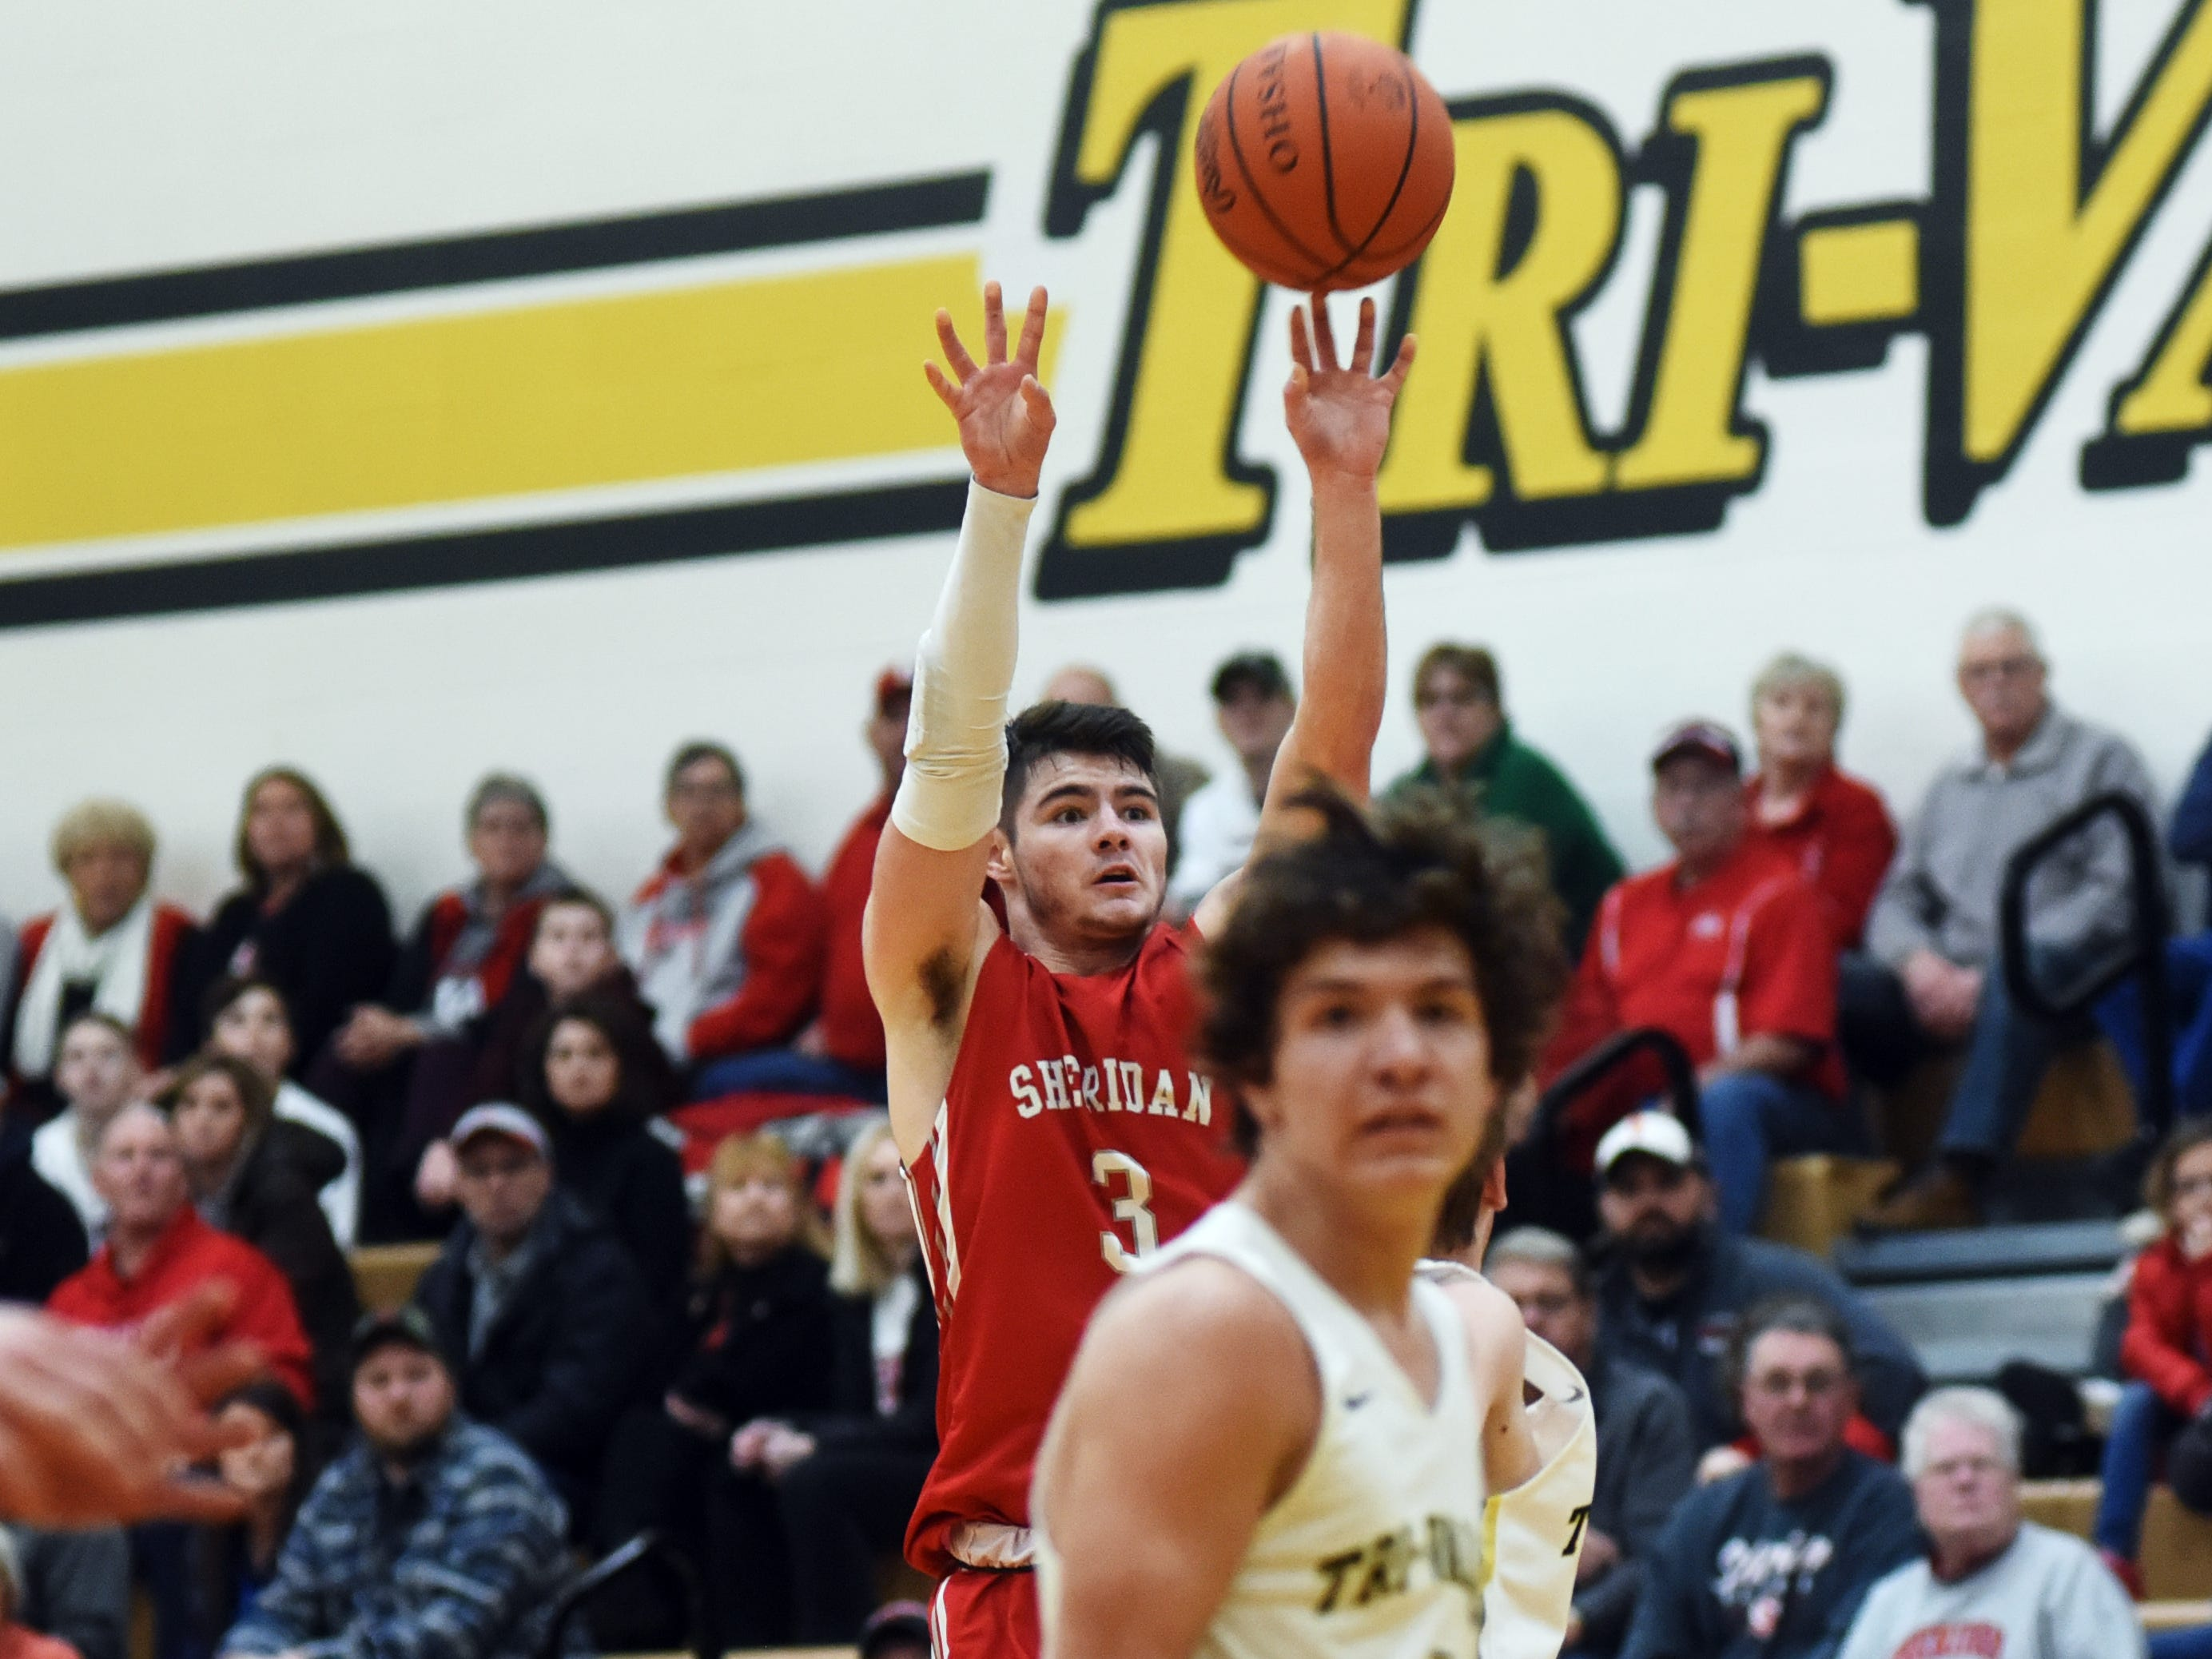 Sheridan's Ethan Heller hoists a jumper against Tri-Valley on Friday night in Dresden.